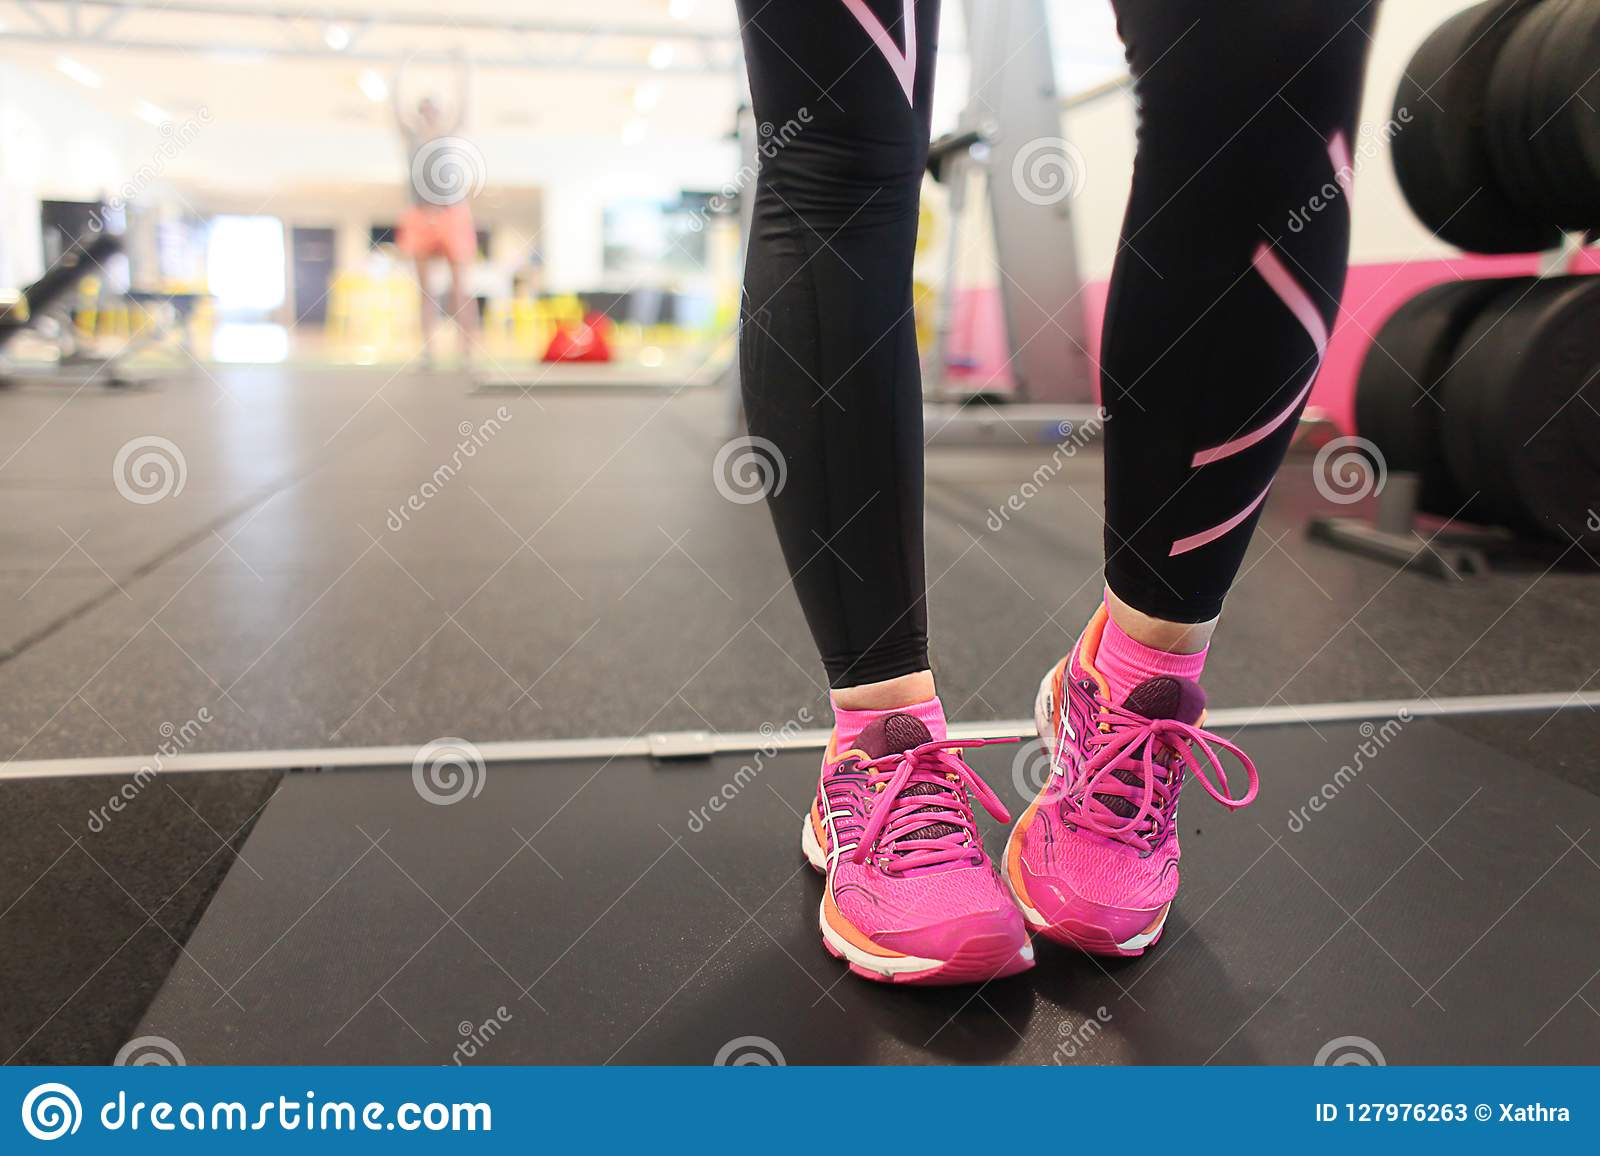 Girl Wearing Pink Running Shoes On